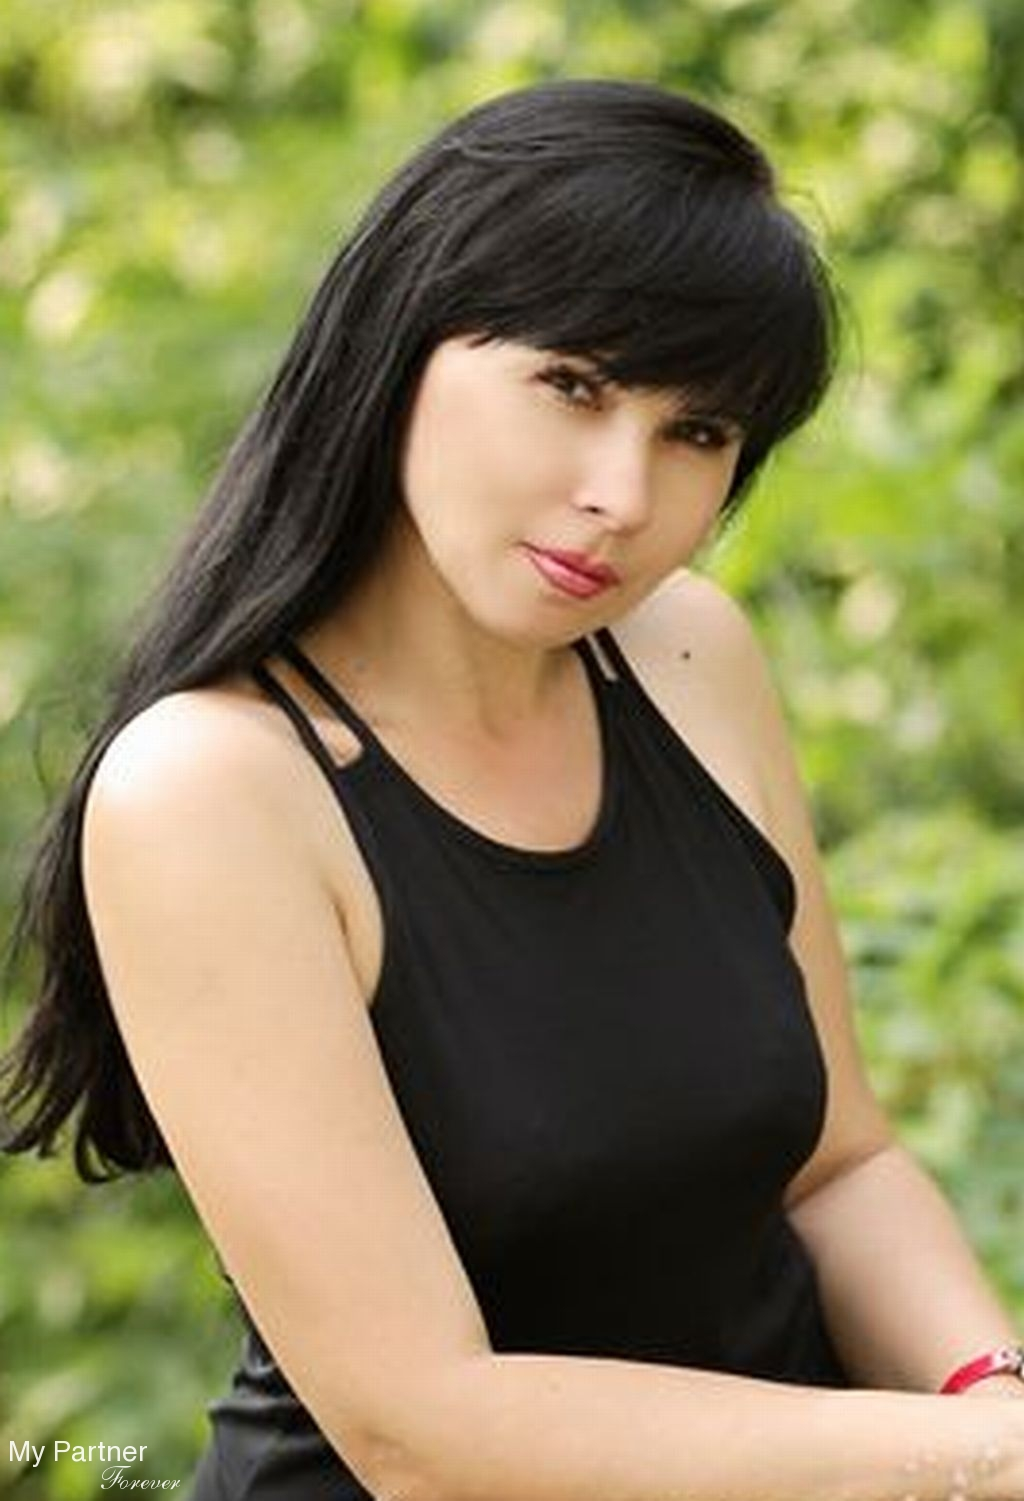 ukraina dating sites If you are looking for ukranian bride you are at the right place kharkov marriage agency is created to help people to find each other team of kharkov marriage agency has much sucessul experience in this field based on high moral values, honesty and loyalty to all our cleints.